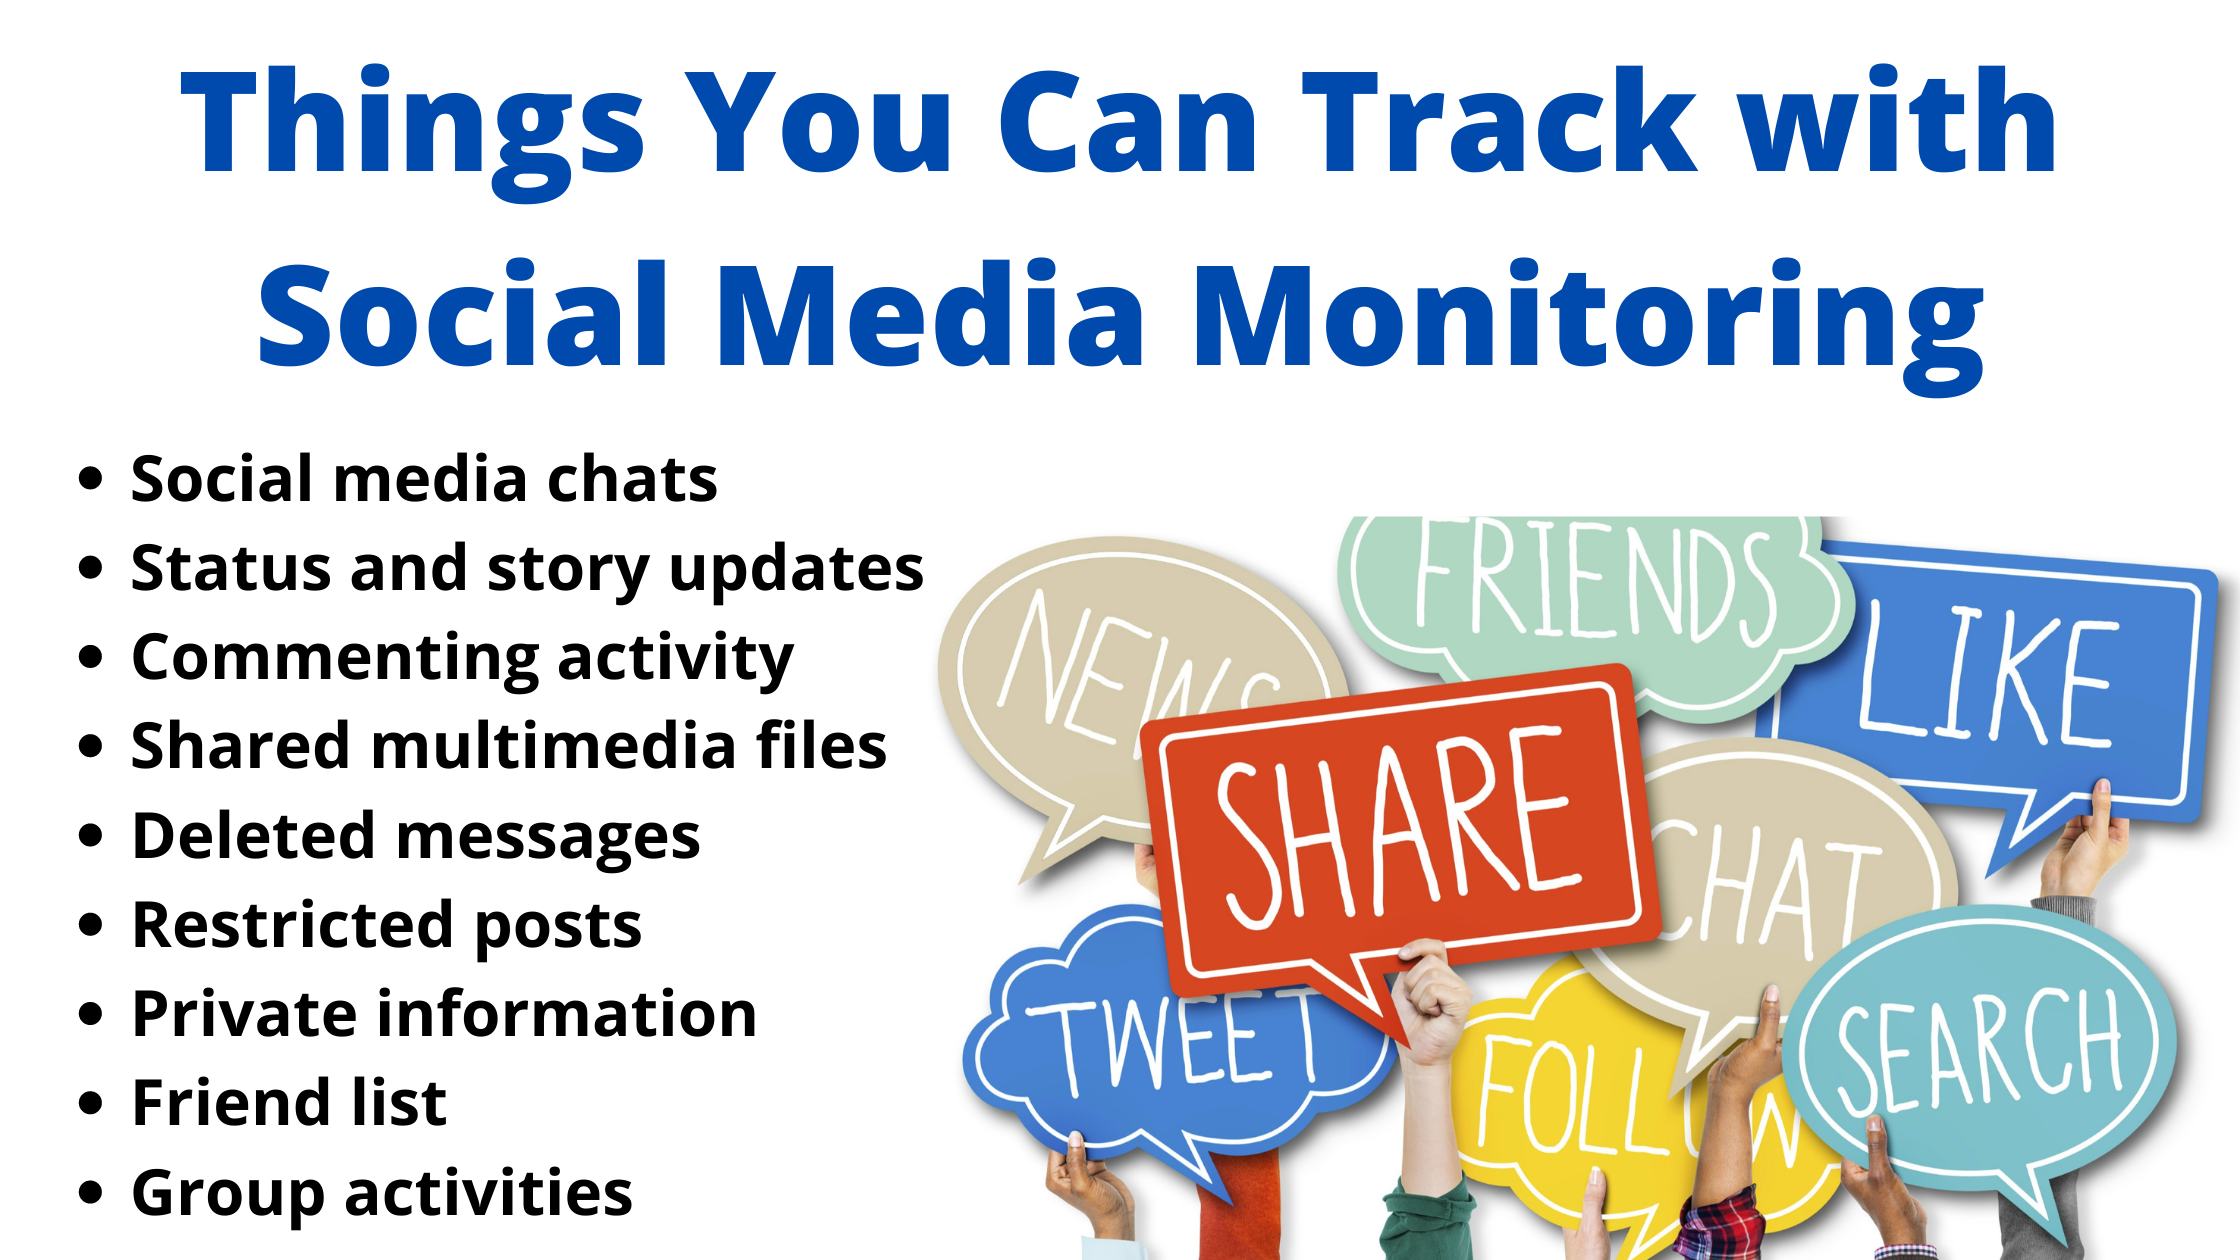 Things You Can Track with Social Media Monitoring